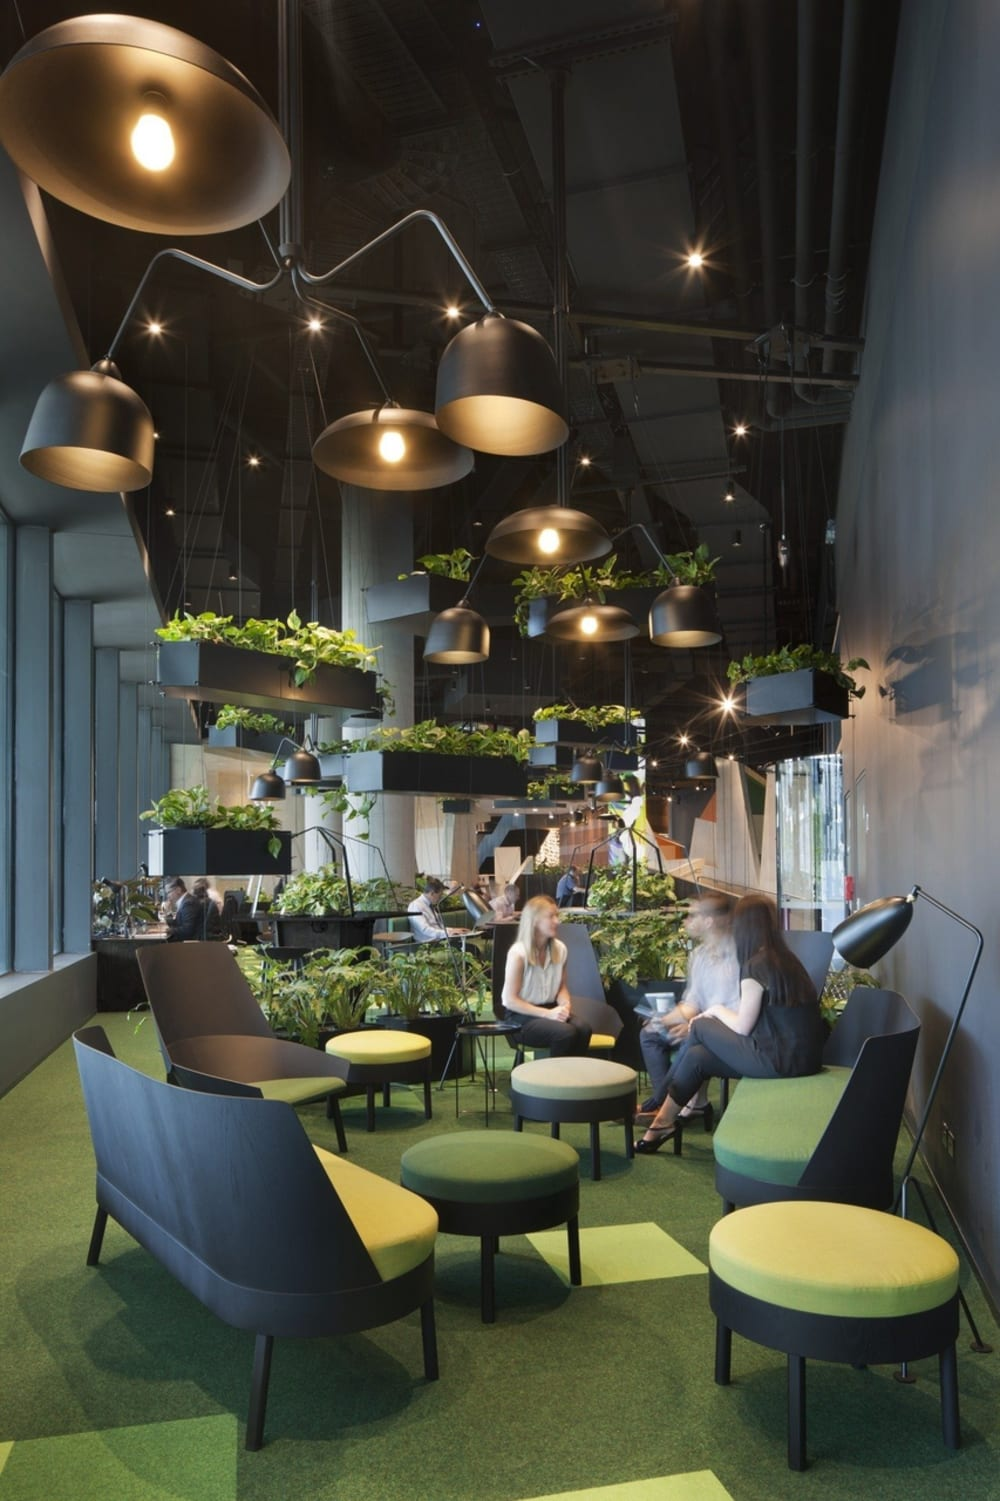 """Open space office divided in smaller and cozier sitting areas using plants.<span class=""""sr-only""""> (opened in a new window/tab)</span>"""